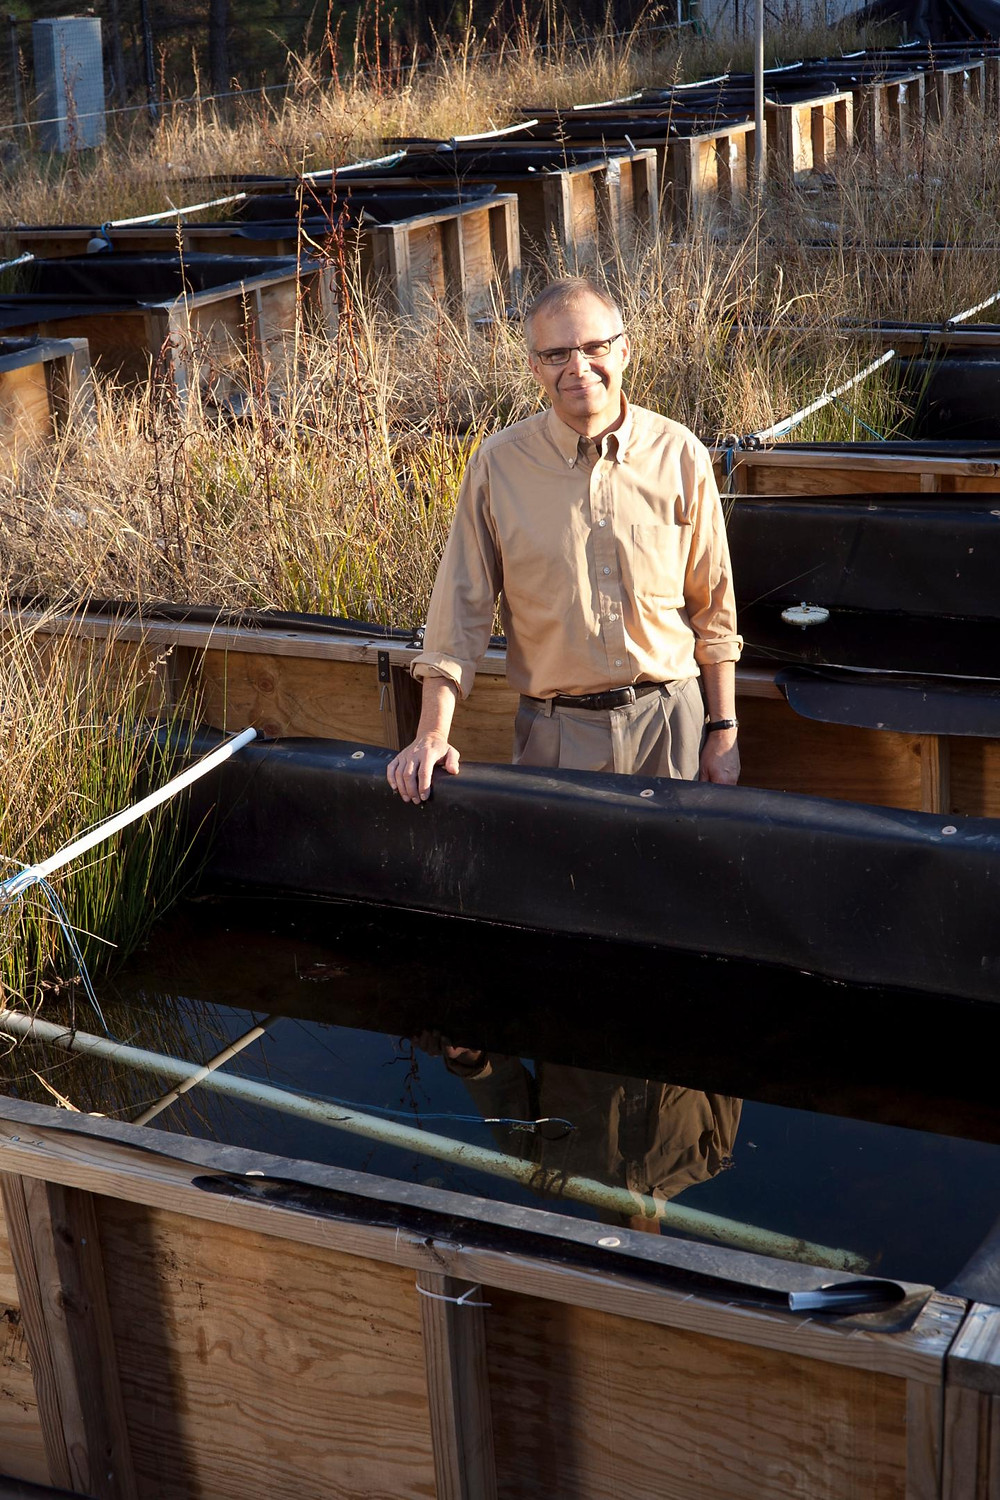 Mark Wiesner stands with rows of mesocosms -- small, manmade structures containing different plants and microorganisms meant to represent a natural environment with experimental controls. @ Duke University